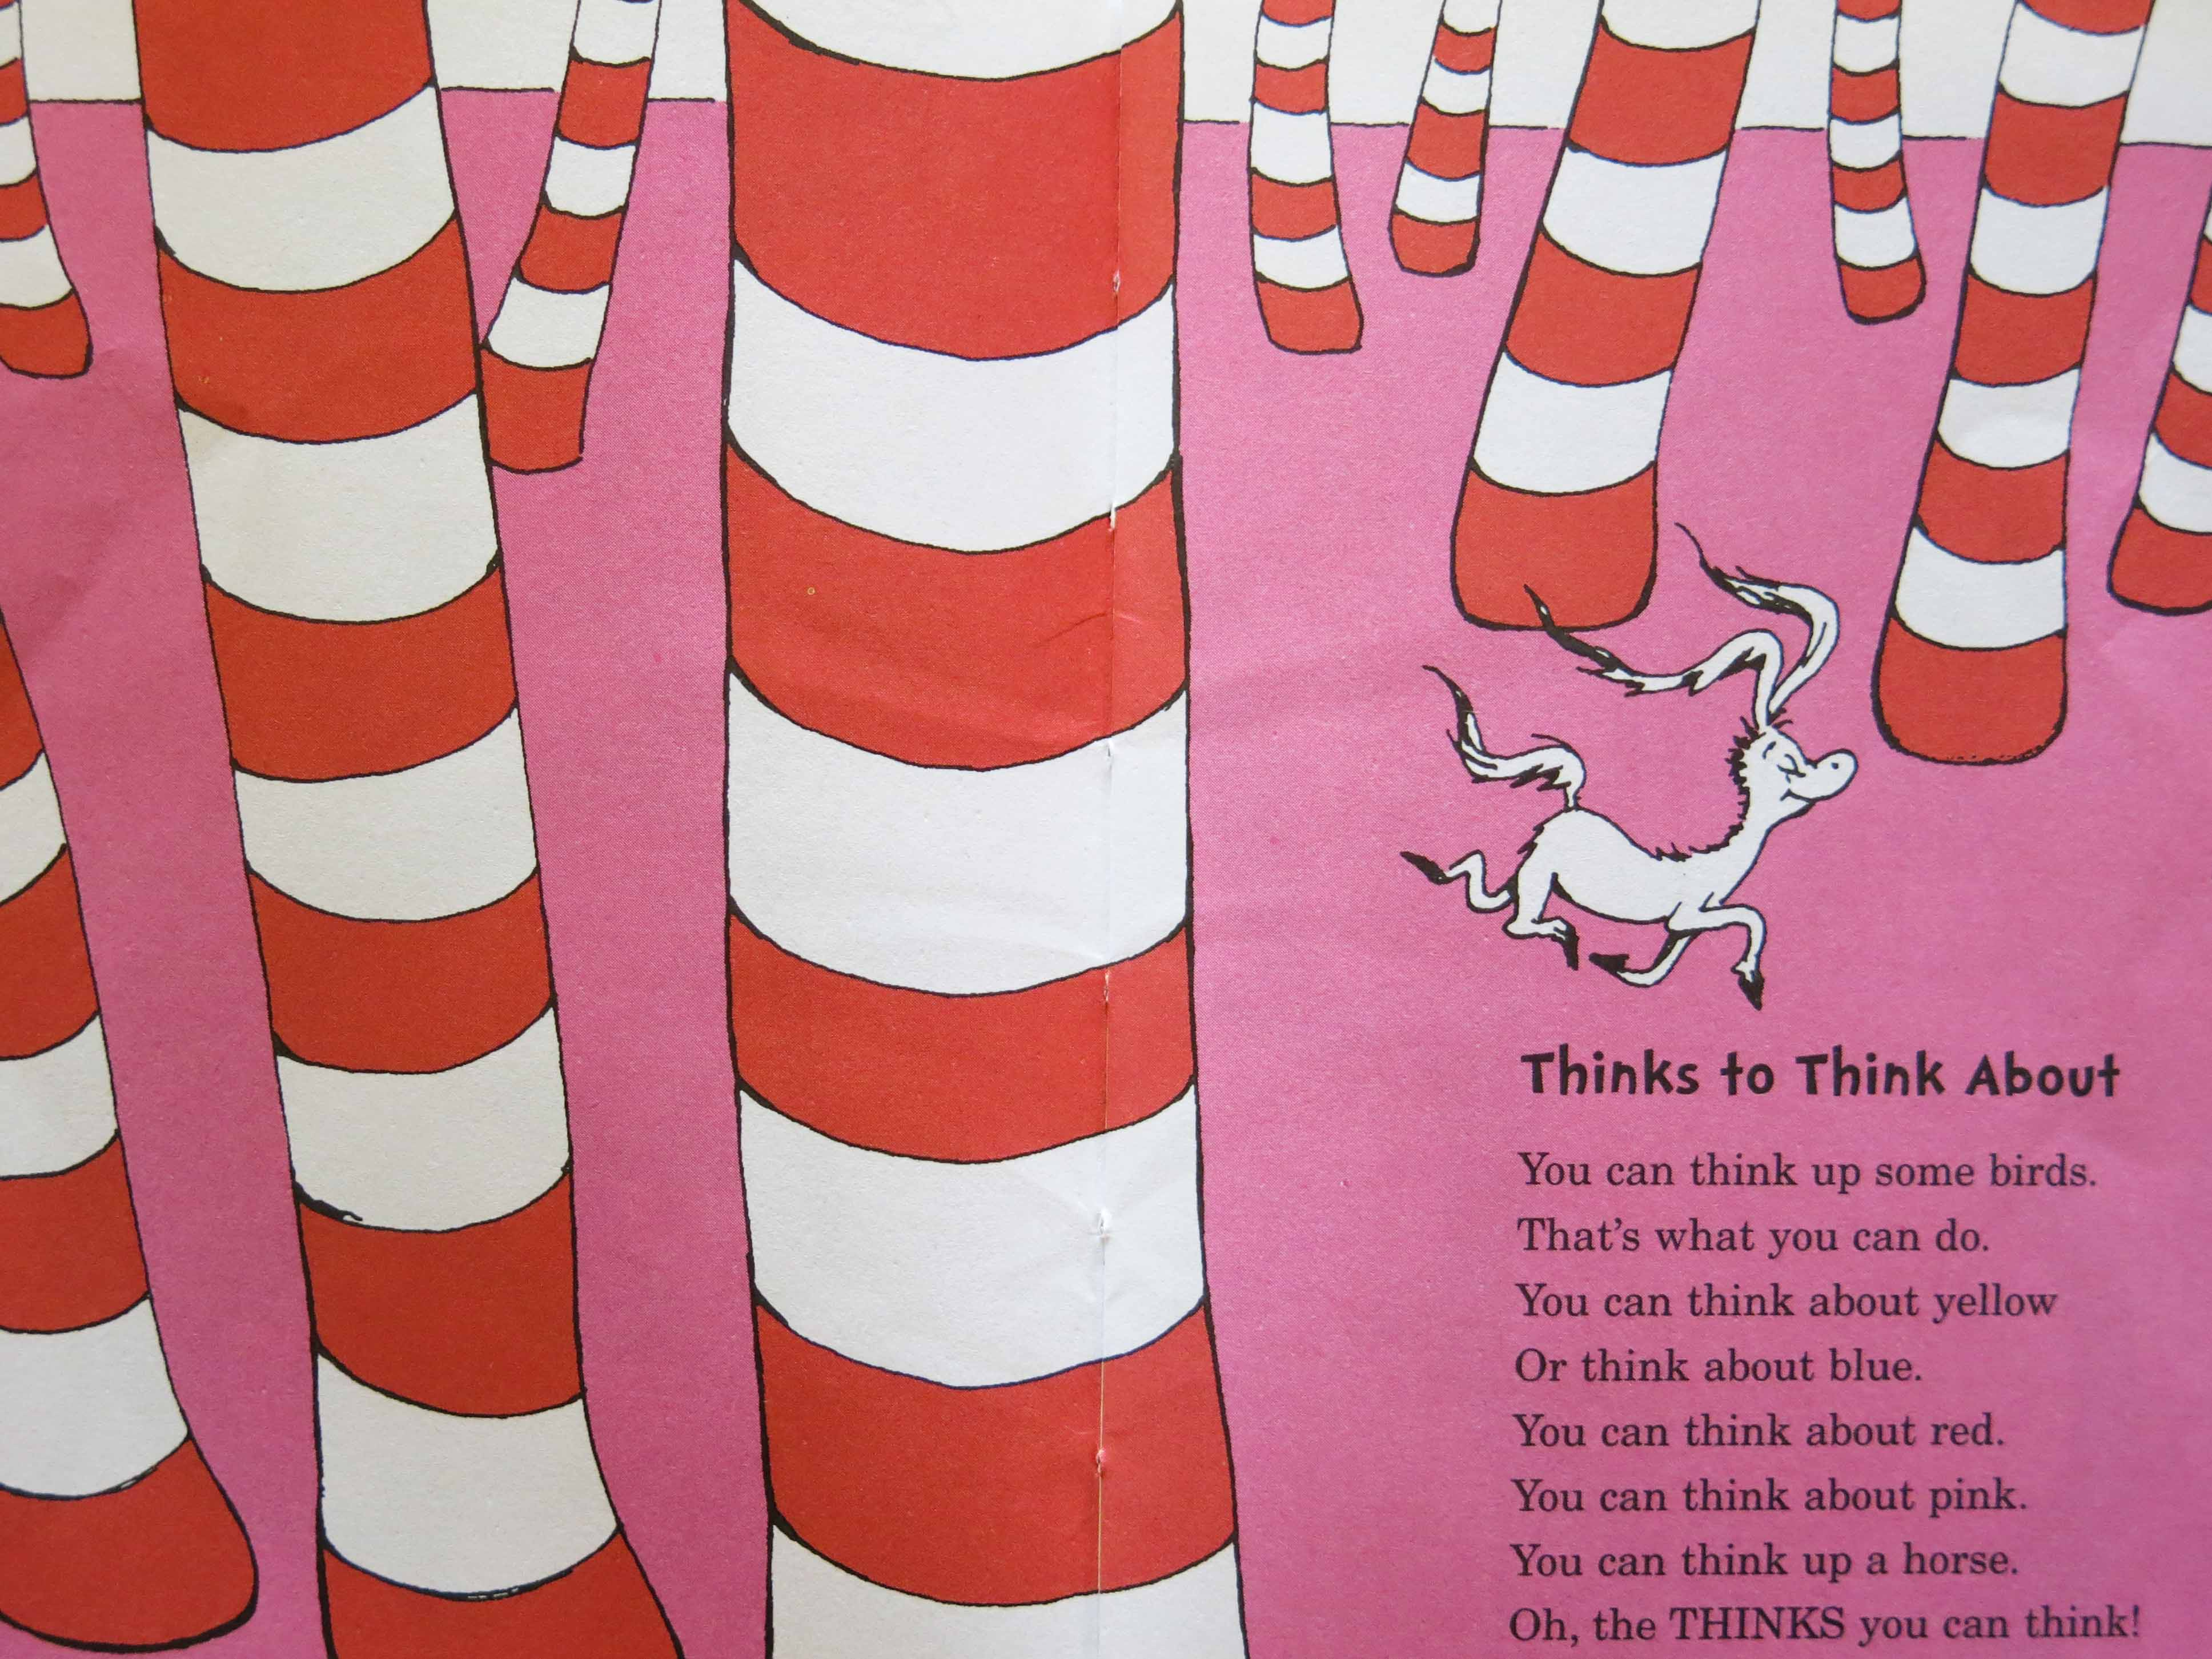 Dr Seuss and business